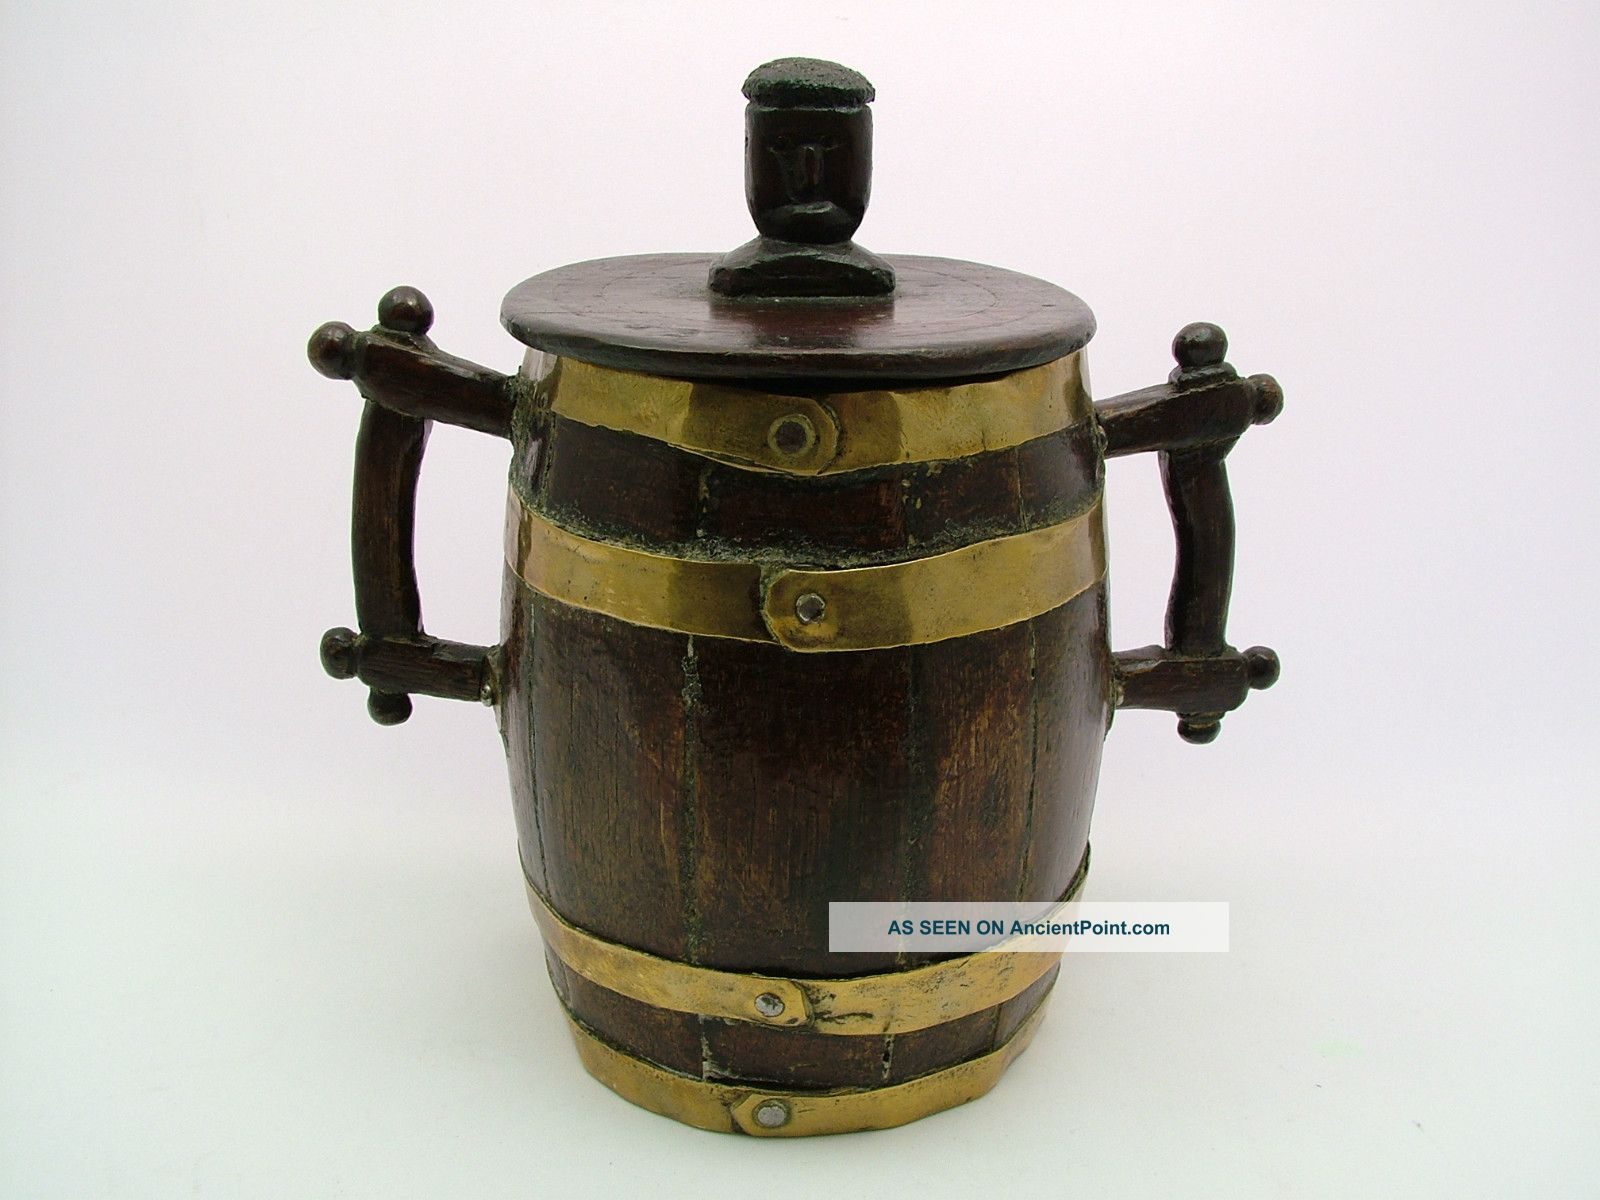 A Most Unusual 19th C.  Folk Art Coopered Barrel - Possibly Maritime Art. Pacific Islands & Oceania photo